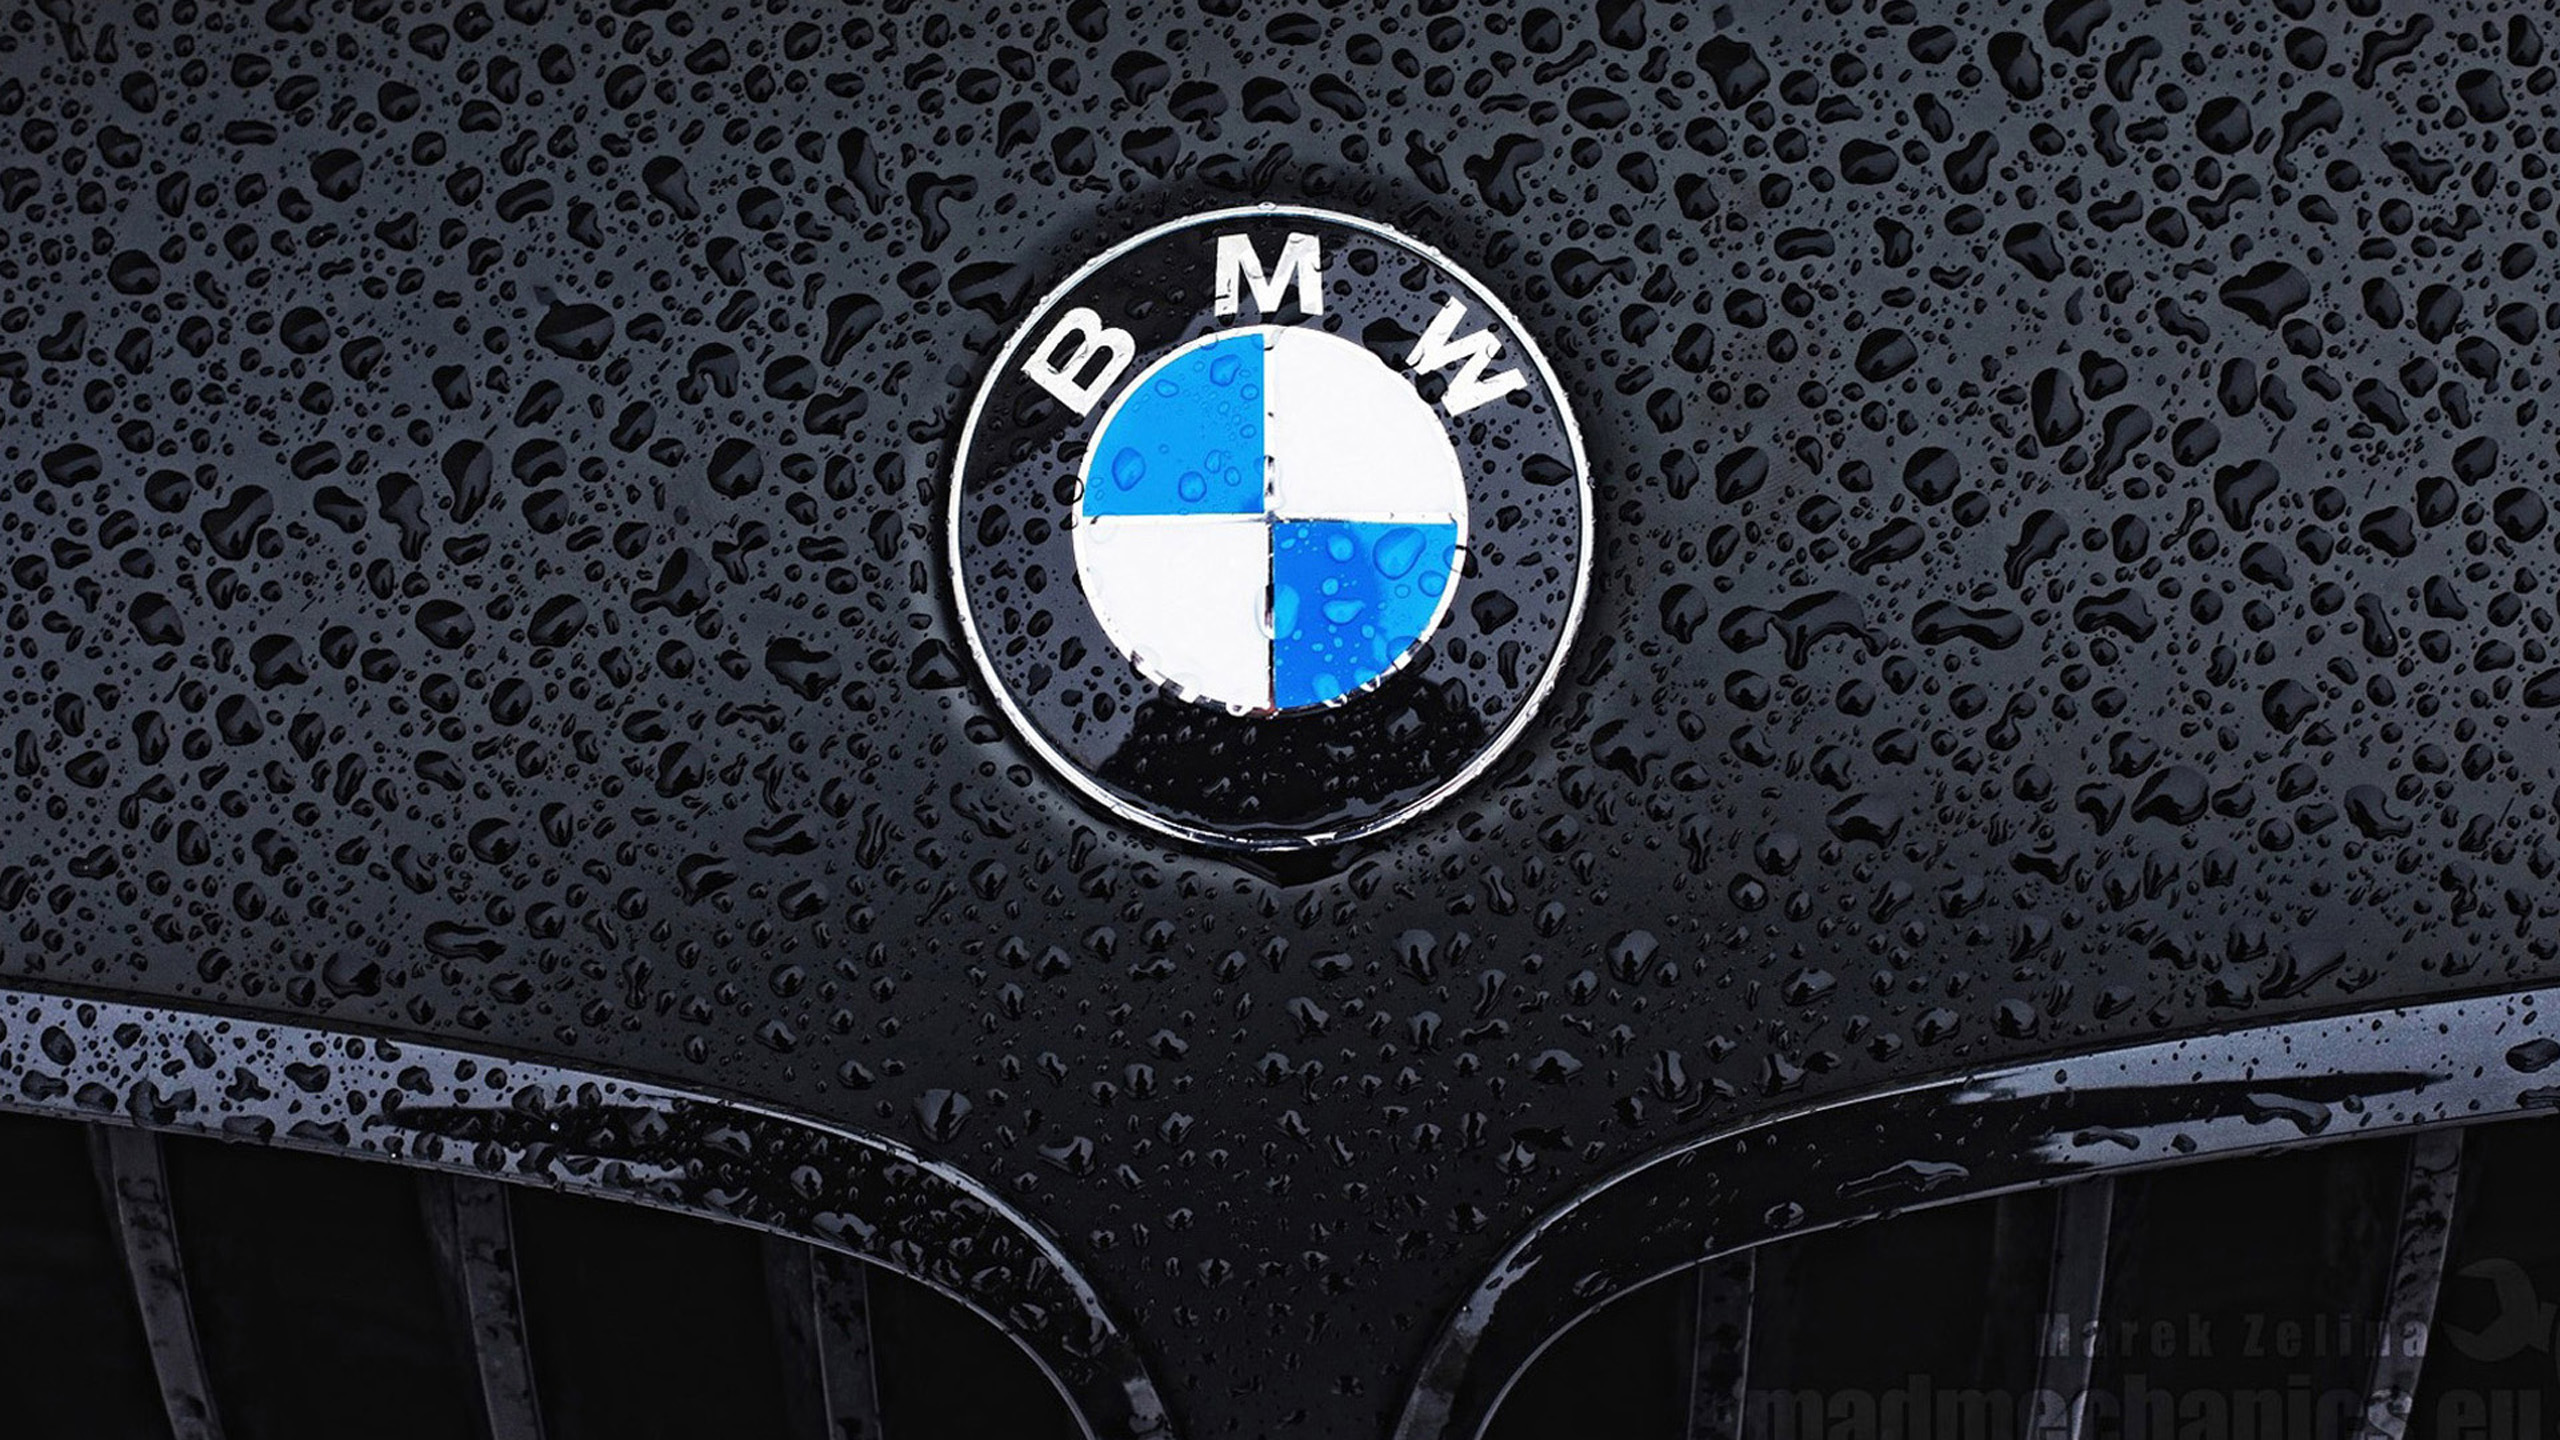 BMW leveraging on digital technologies to build stronger customer relationship